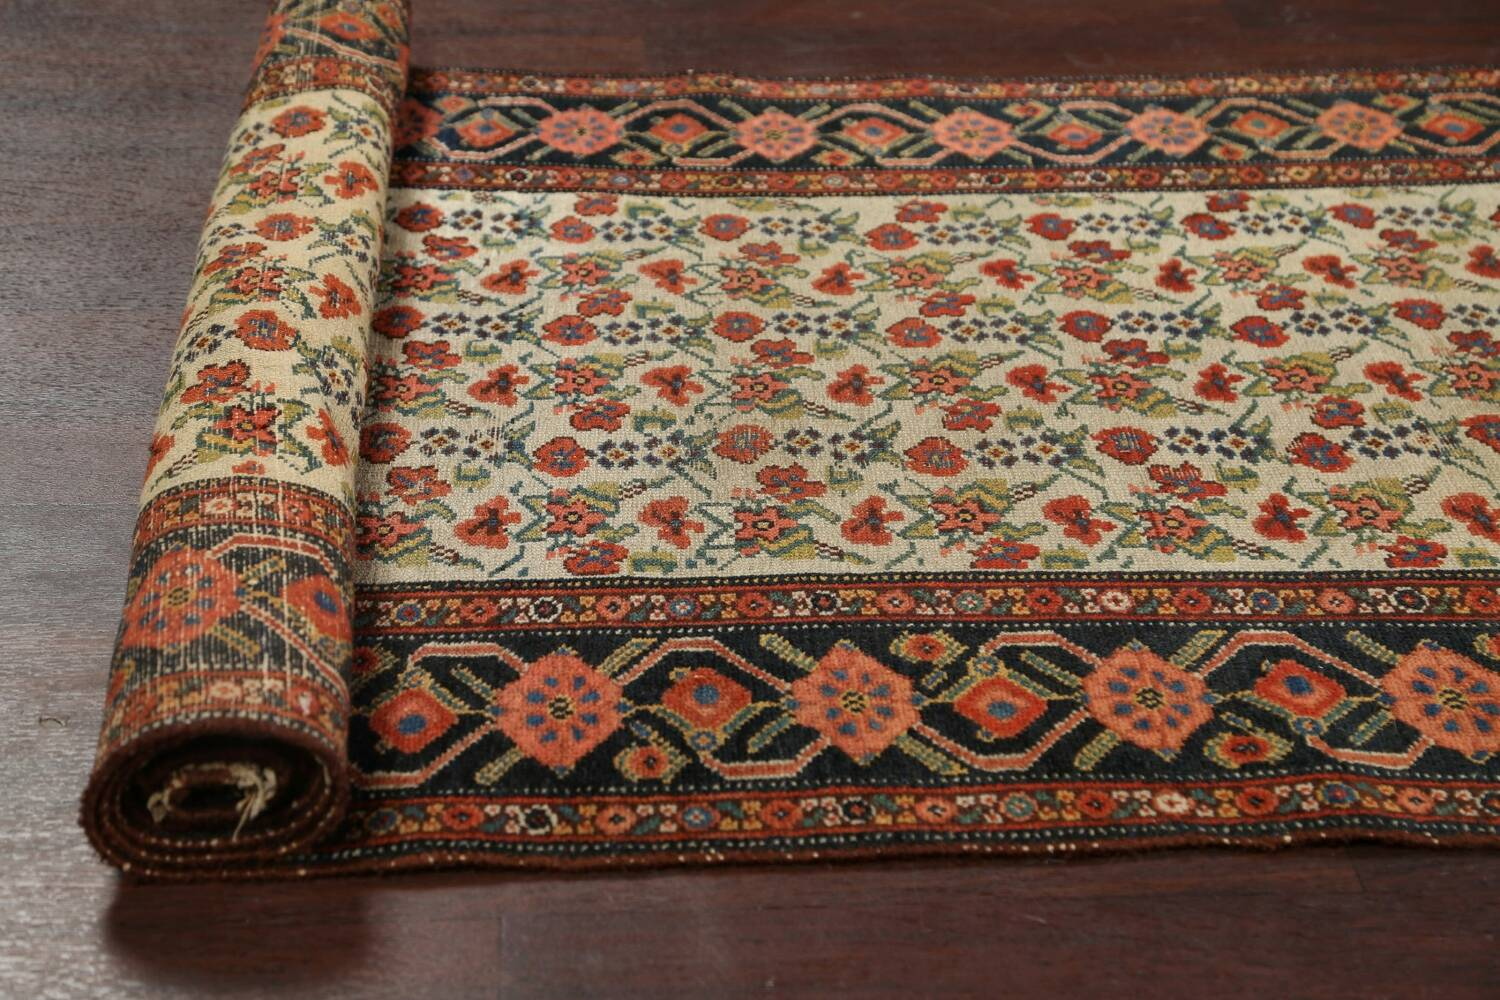 Pre-1900 Antique Vegetable Dye Malayer Persian Runner Rug 3x16 image 16